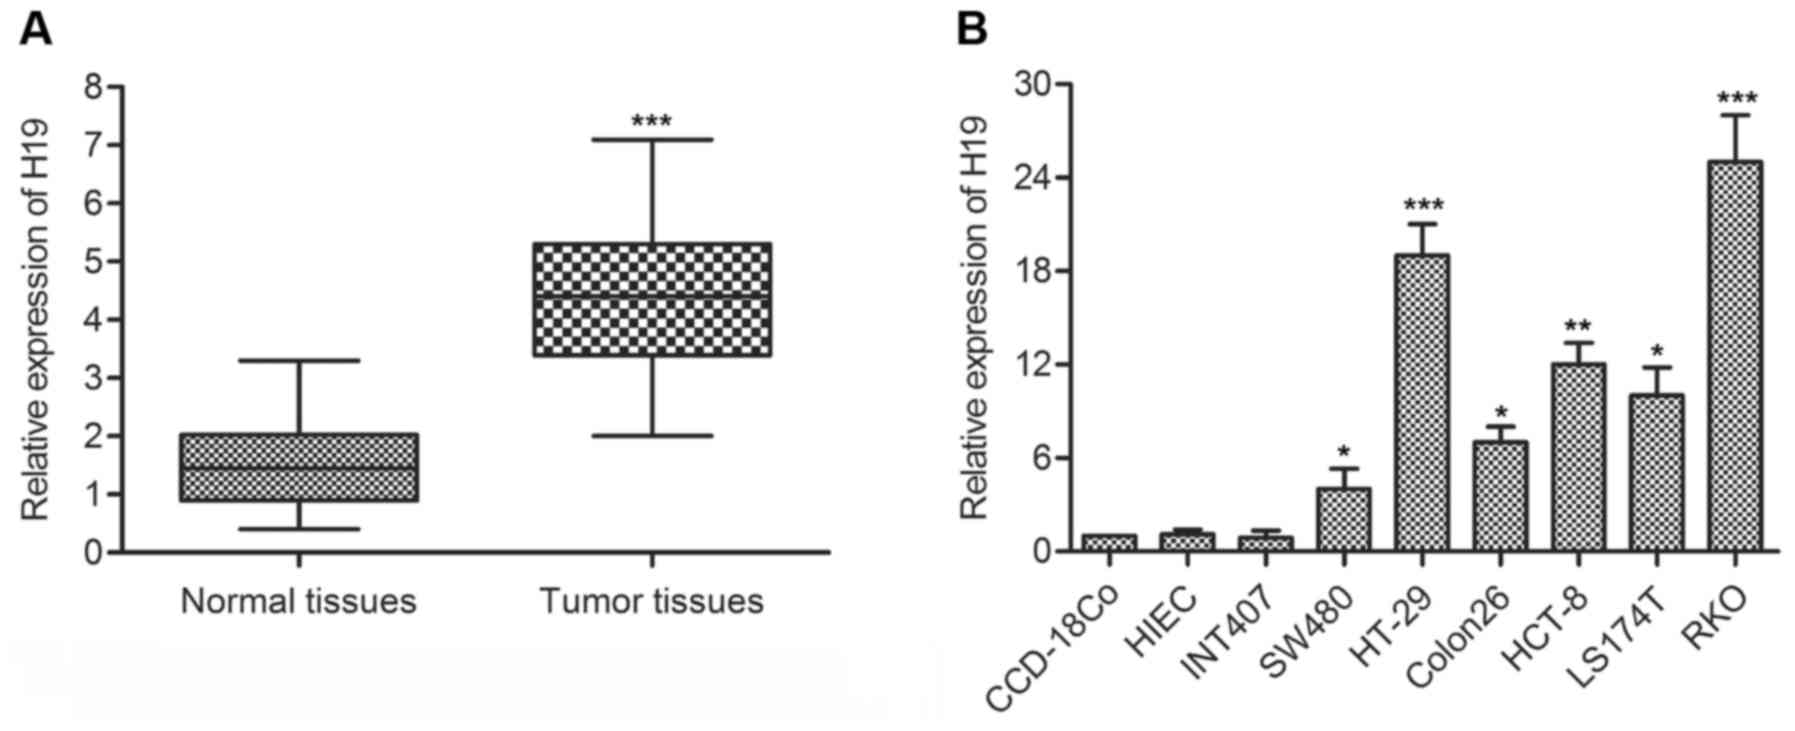 H19 Promotes The Migration And Invasion Of Colon Cancer By Sponging Wiring Diagram Furthermore Cat 5 Pdf On 5e 6 Figure 1 Lncrna Is Overexpressed In Tissue Cell Lines A Relative Expression Crc Samples Adjacent Histologically